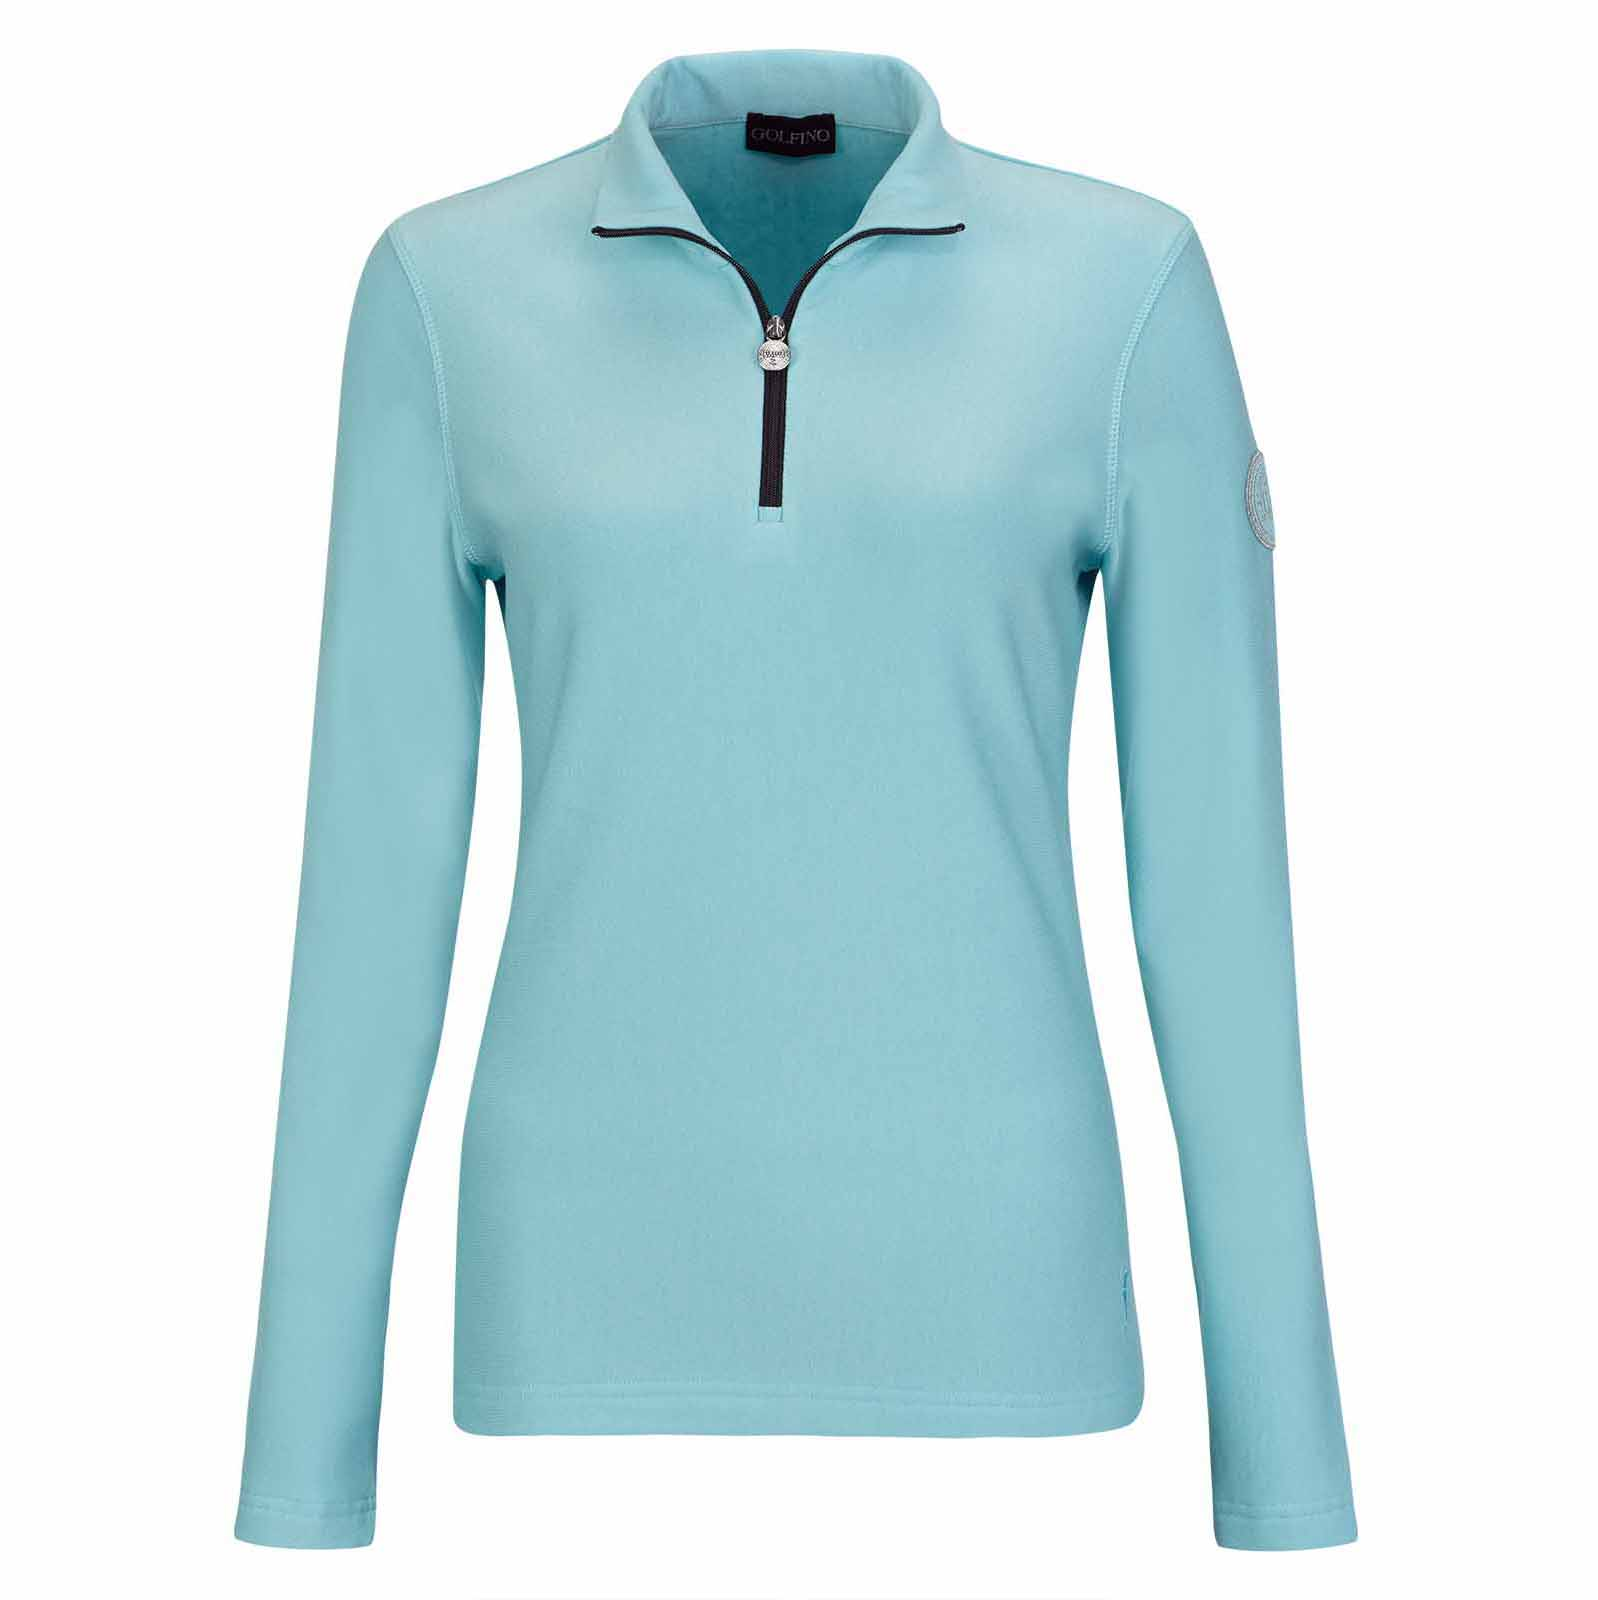 Ladies techno wool sweatshirt with Cold Protection function